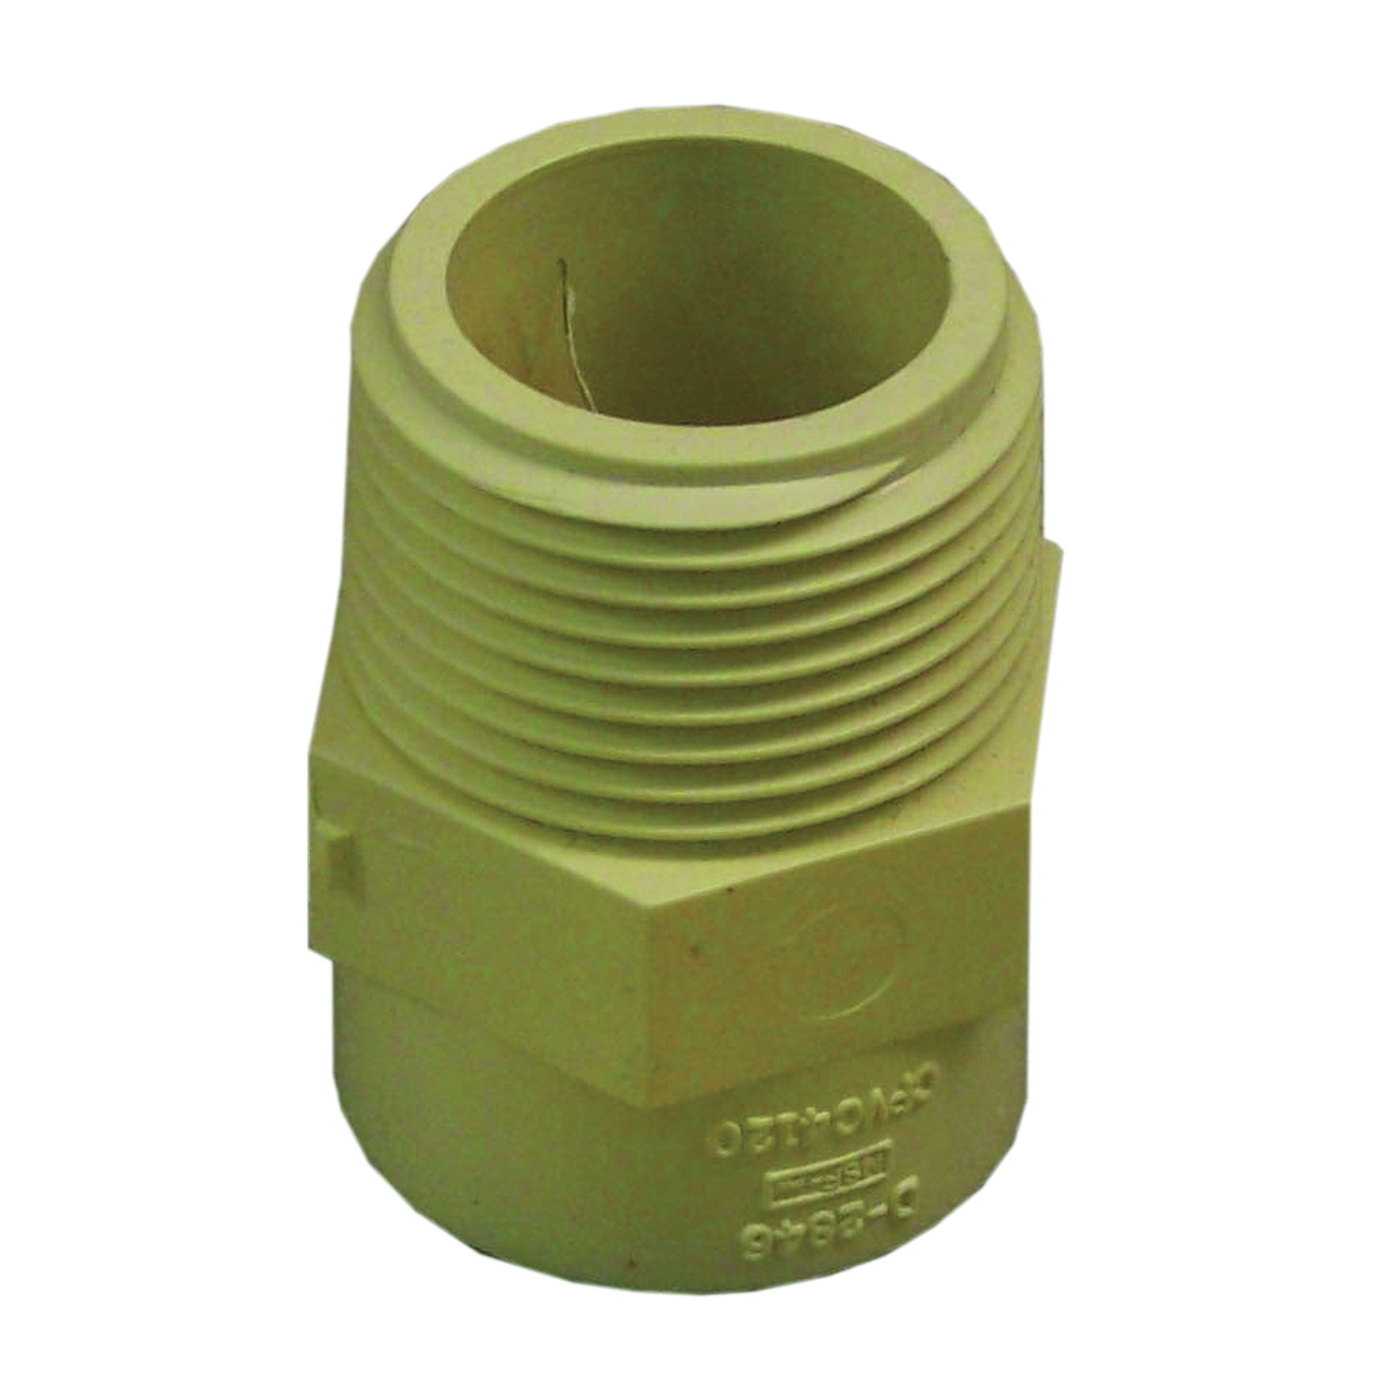 Picture of GENOVA 500 50410 Male Adapter, 1 in, MIP x Slip, CPVC, 100 psi Pressure